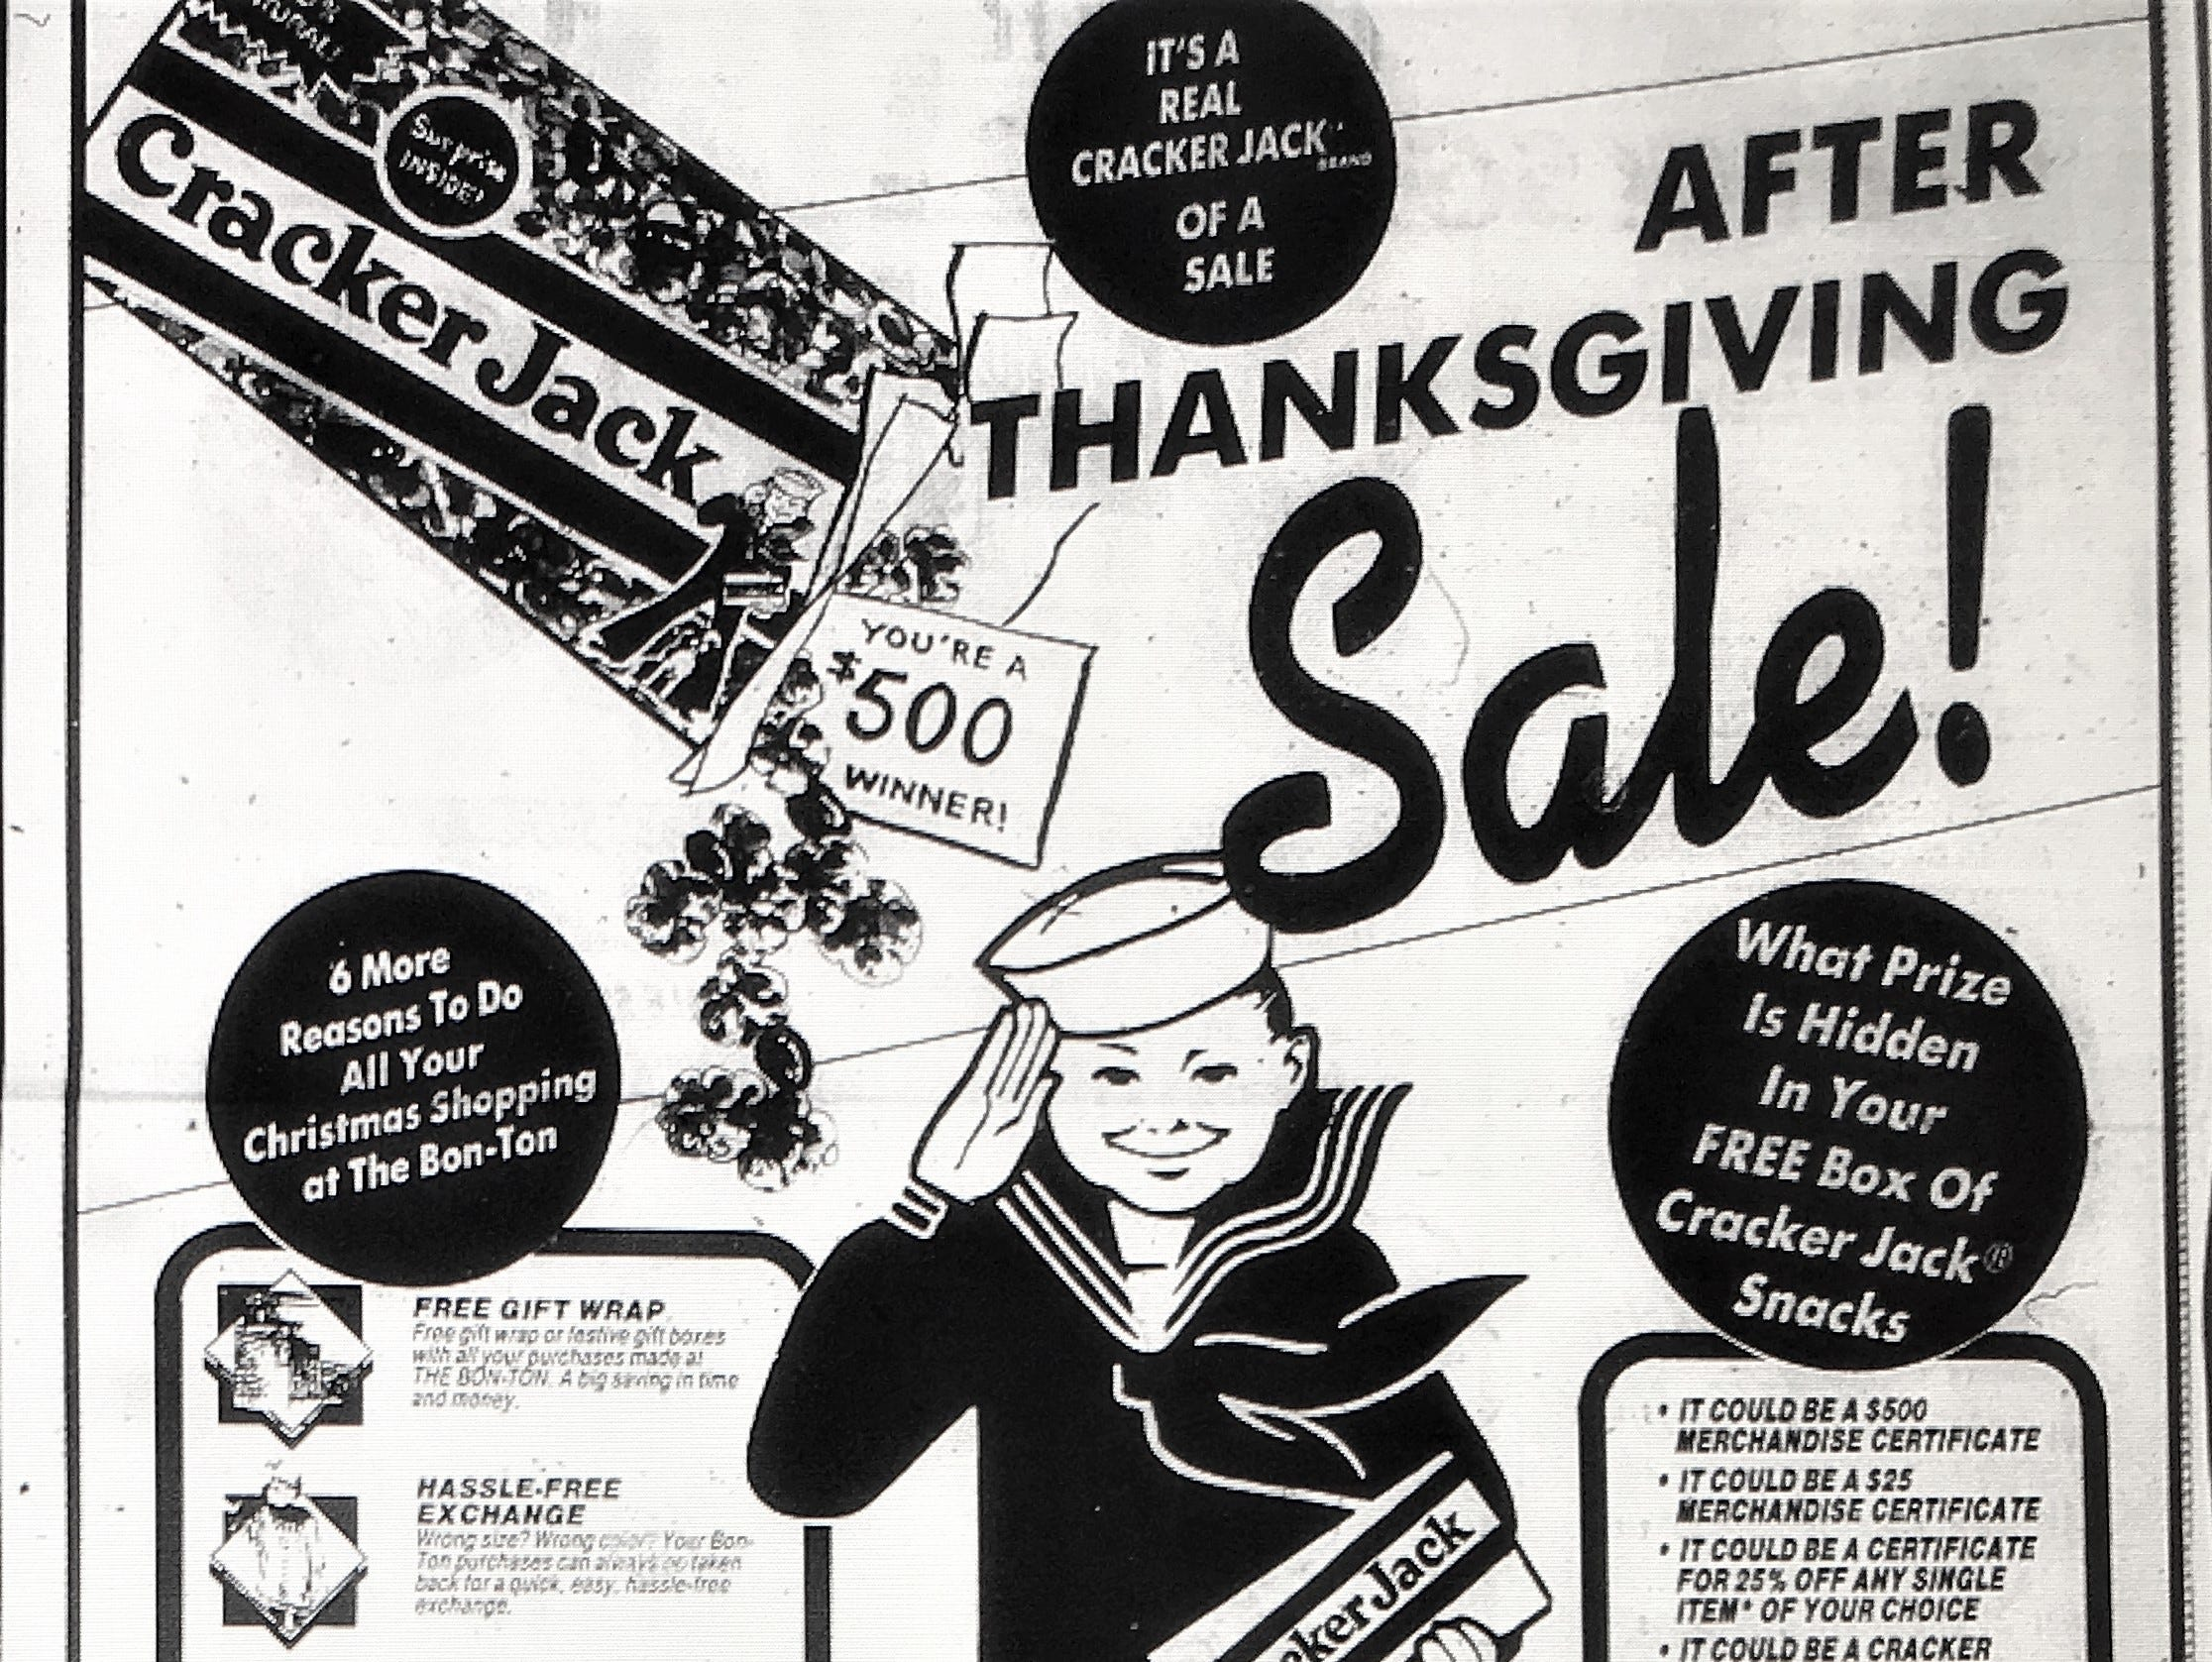 A 1988 joint advertisement between Cracker Jack and Bon-Ton department stores. In August 2018 several Bon-Ton locations within Pennsylvania closed including stores in Camp Hill, Harrisburg, Hanover, Lancaster and York.